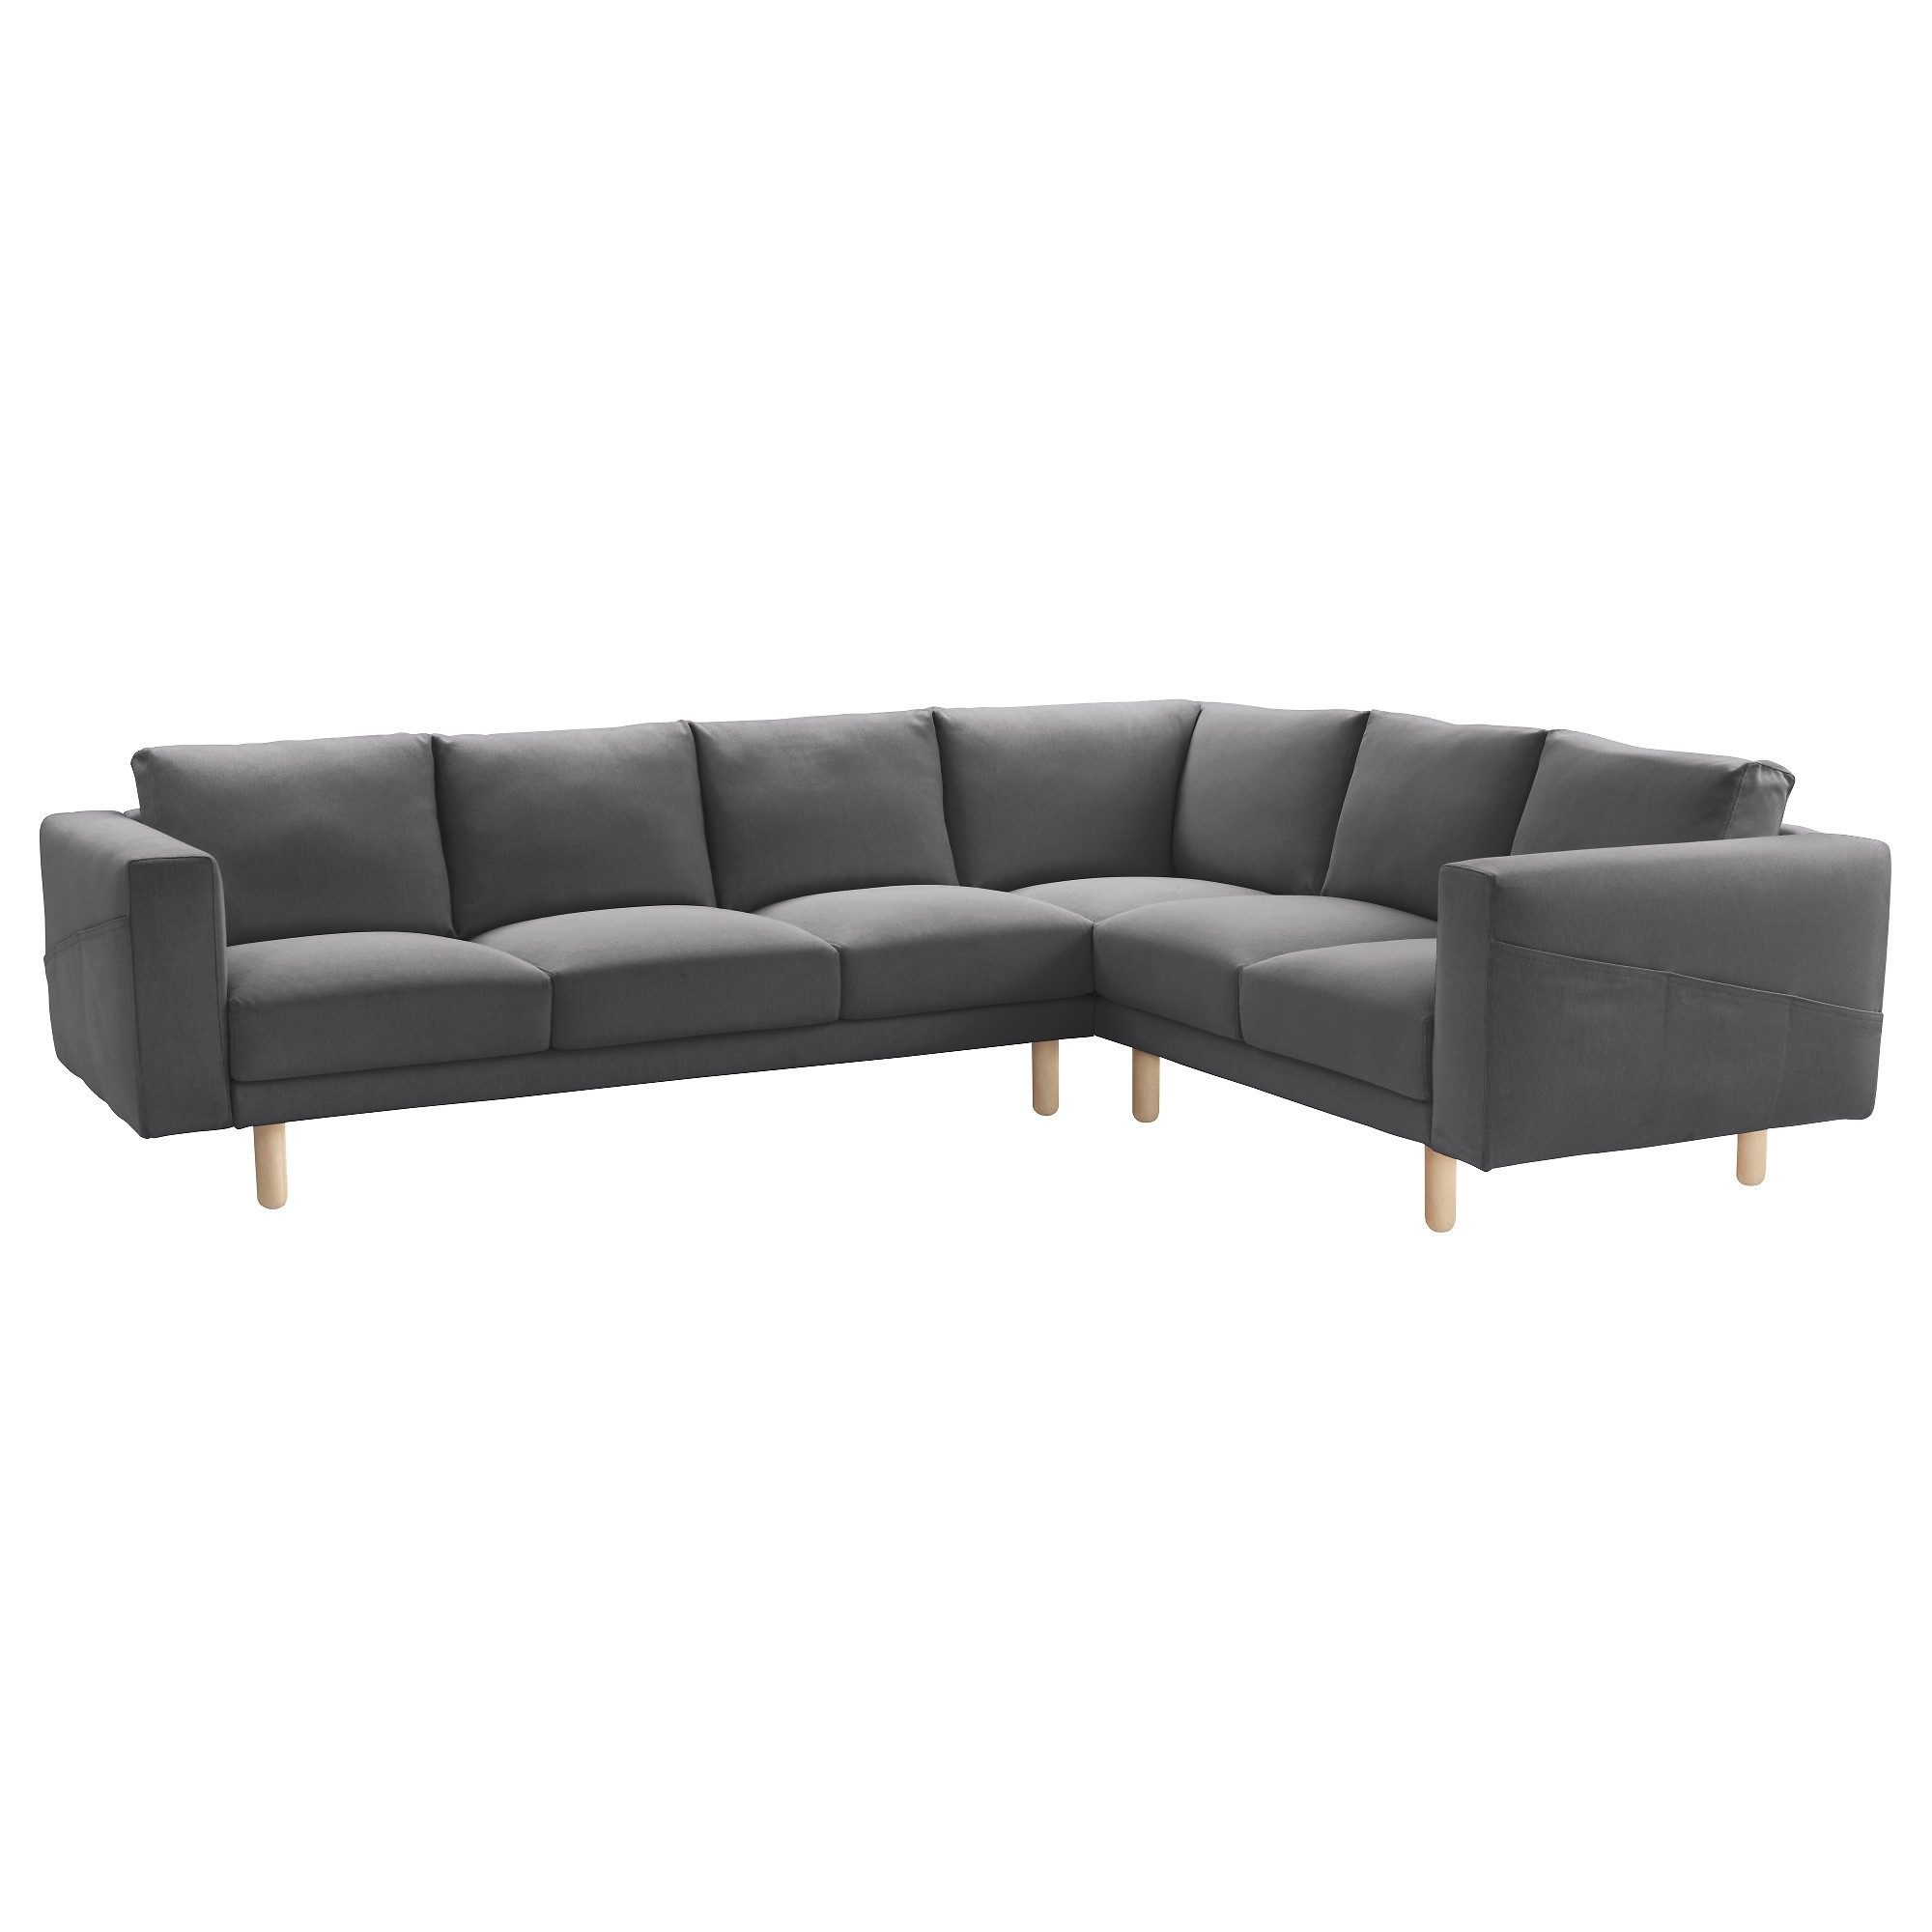 Ikea Small Sofas Pertaining To Current Norsborg Sectional, 5 Seat Corner – Finnsta Dark Gray, Birch – Ikea (Gallery 15 of 15)